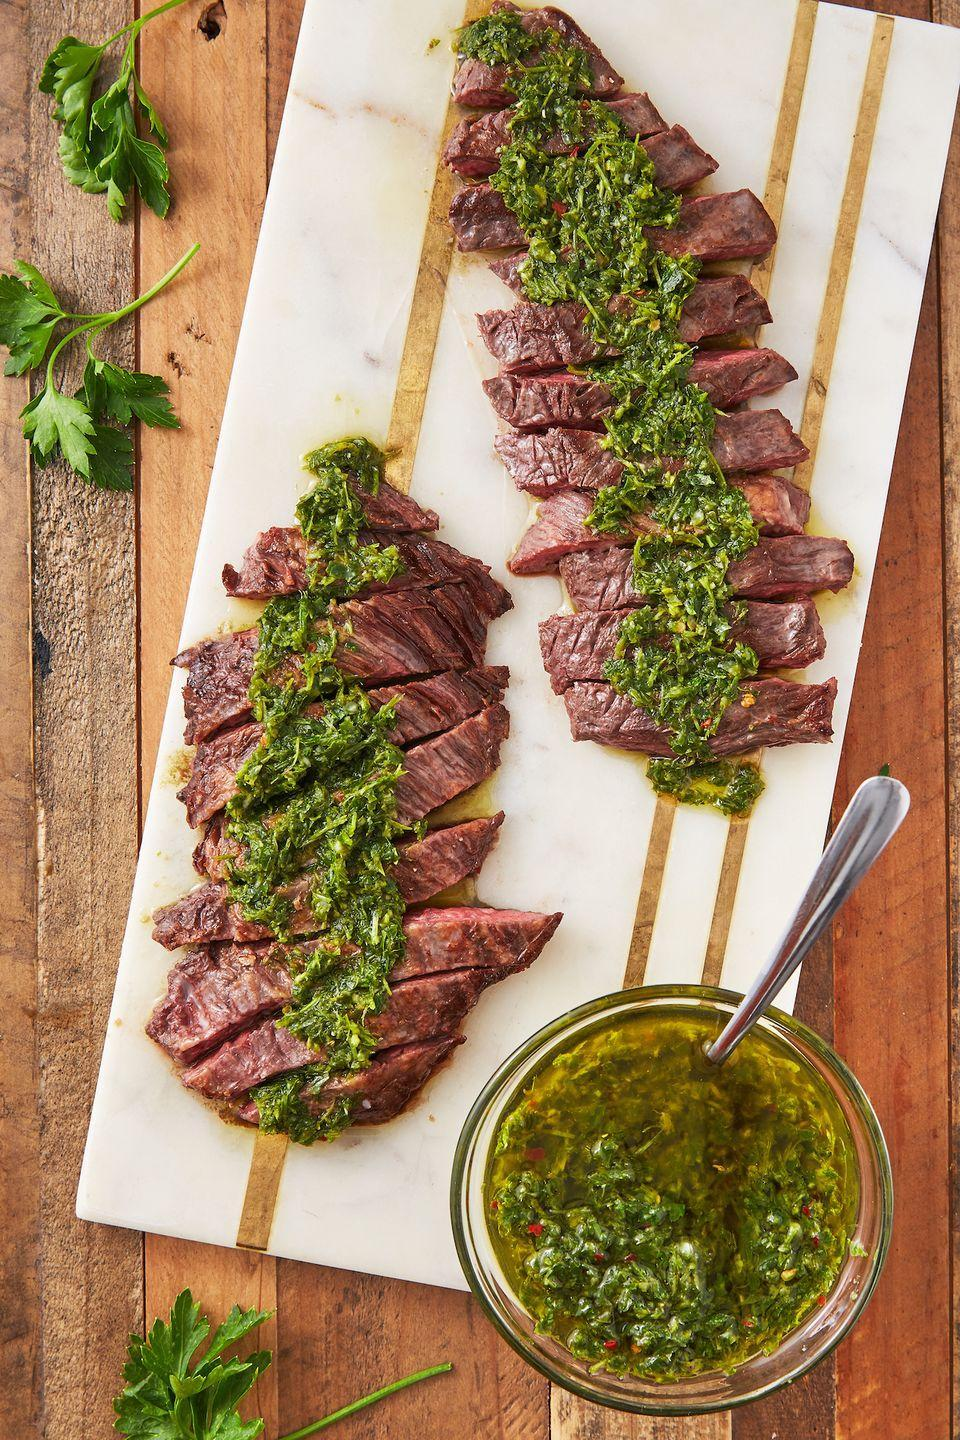 """<p>Our chimichurri sauce is good on <em>everything</em>, but especially a flank steak. </p><p>Get the recipe from <a href=""""https://www.delish.com/cooking/recipe-ideas/a27793321/chimichurri-sauce-recipe/"""" rel=""""nofollow noopener"""" target=""""_blank"""" data-ylk=""""slk:Delish"""" class=""""link rapid-noclick-resp"""">Delish</a>. </p>"""